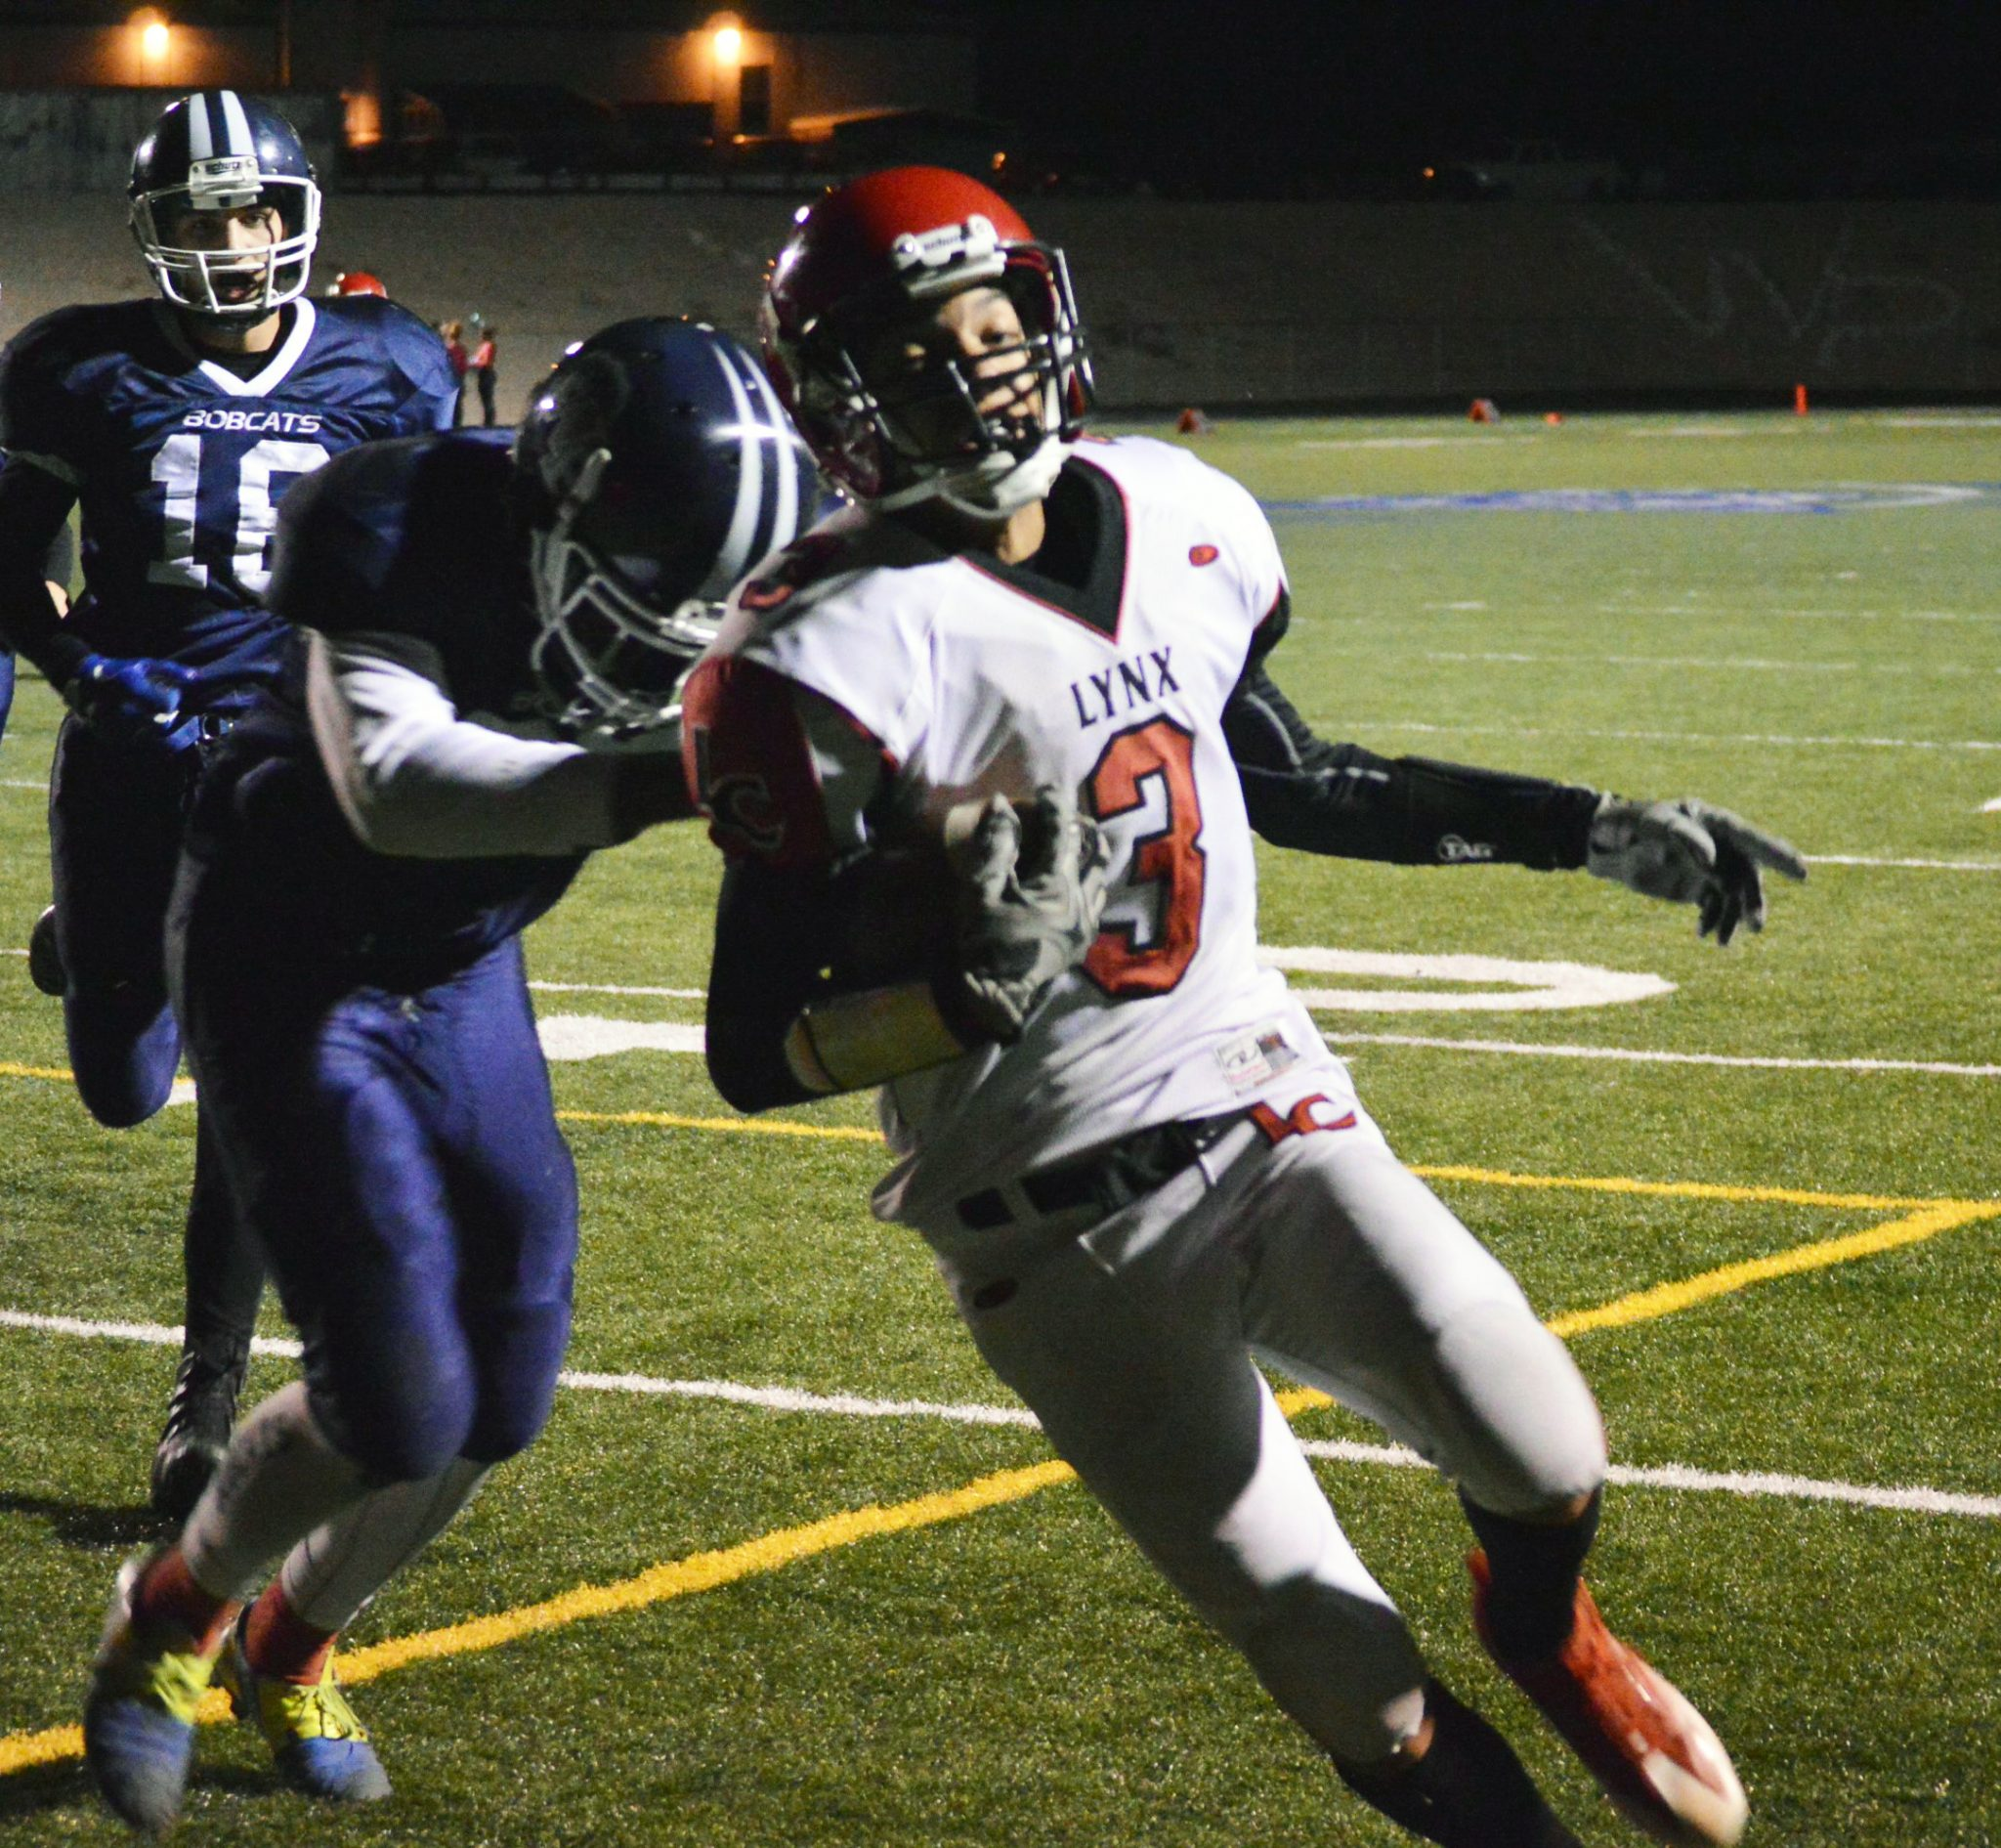 Lynx Get Payback at White Pine